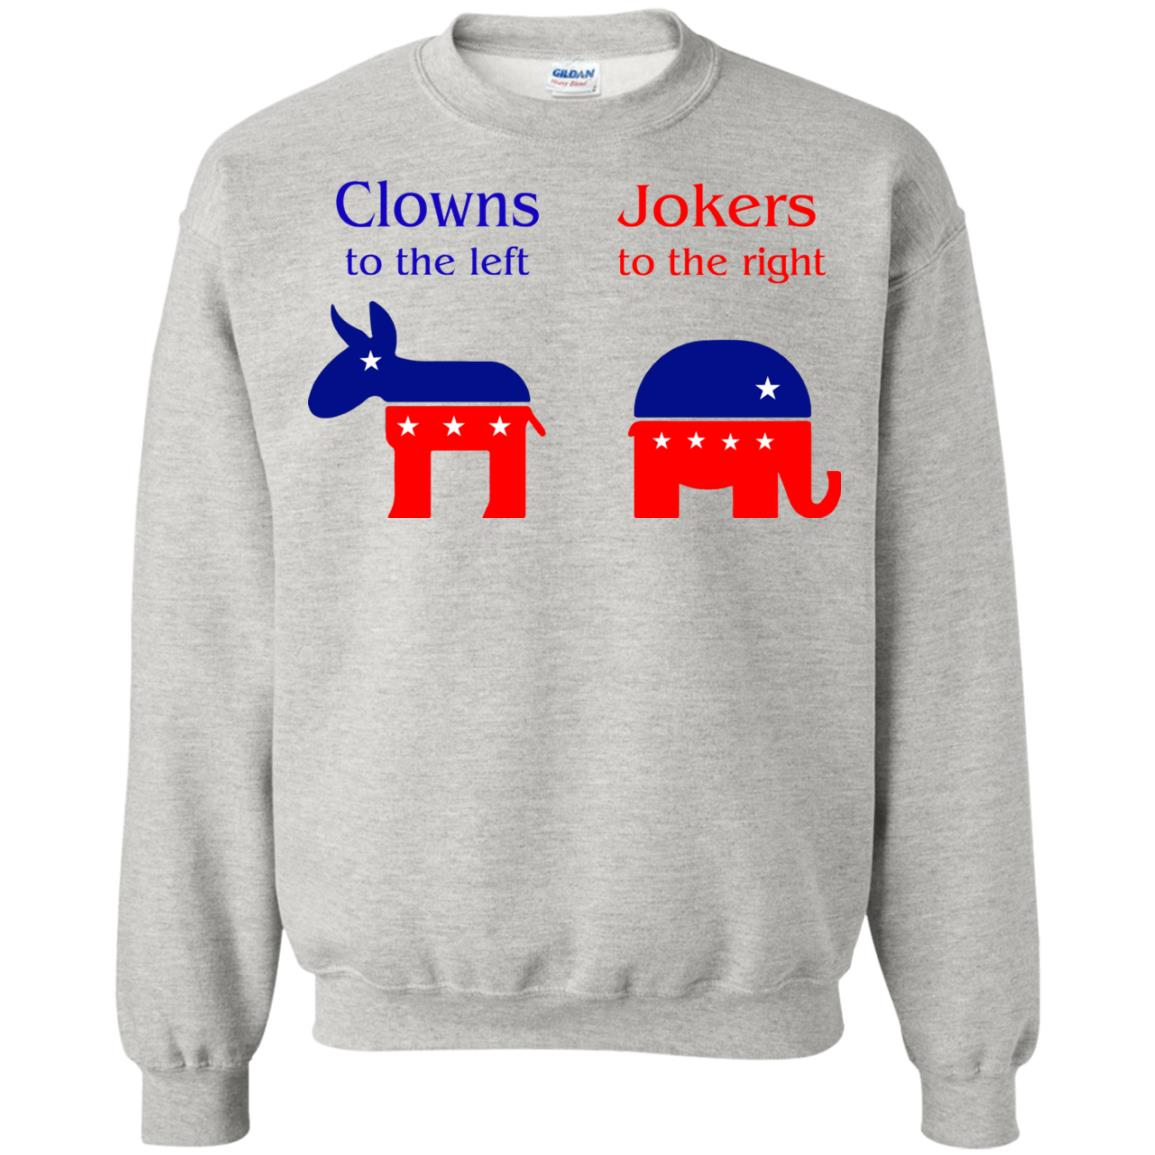 image 79 - Clowns To The Left, Jokers To The Right Shirt, Sweatshirt, Hoodie